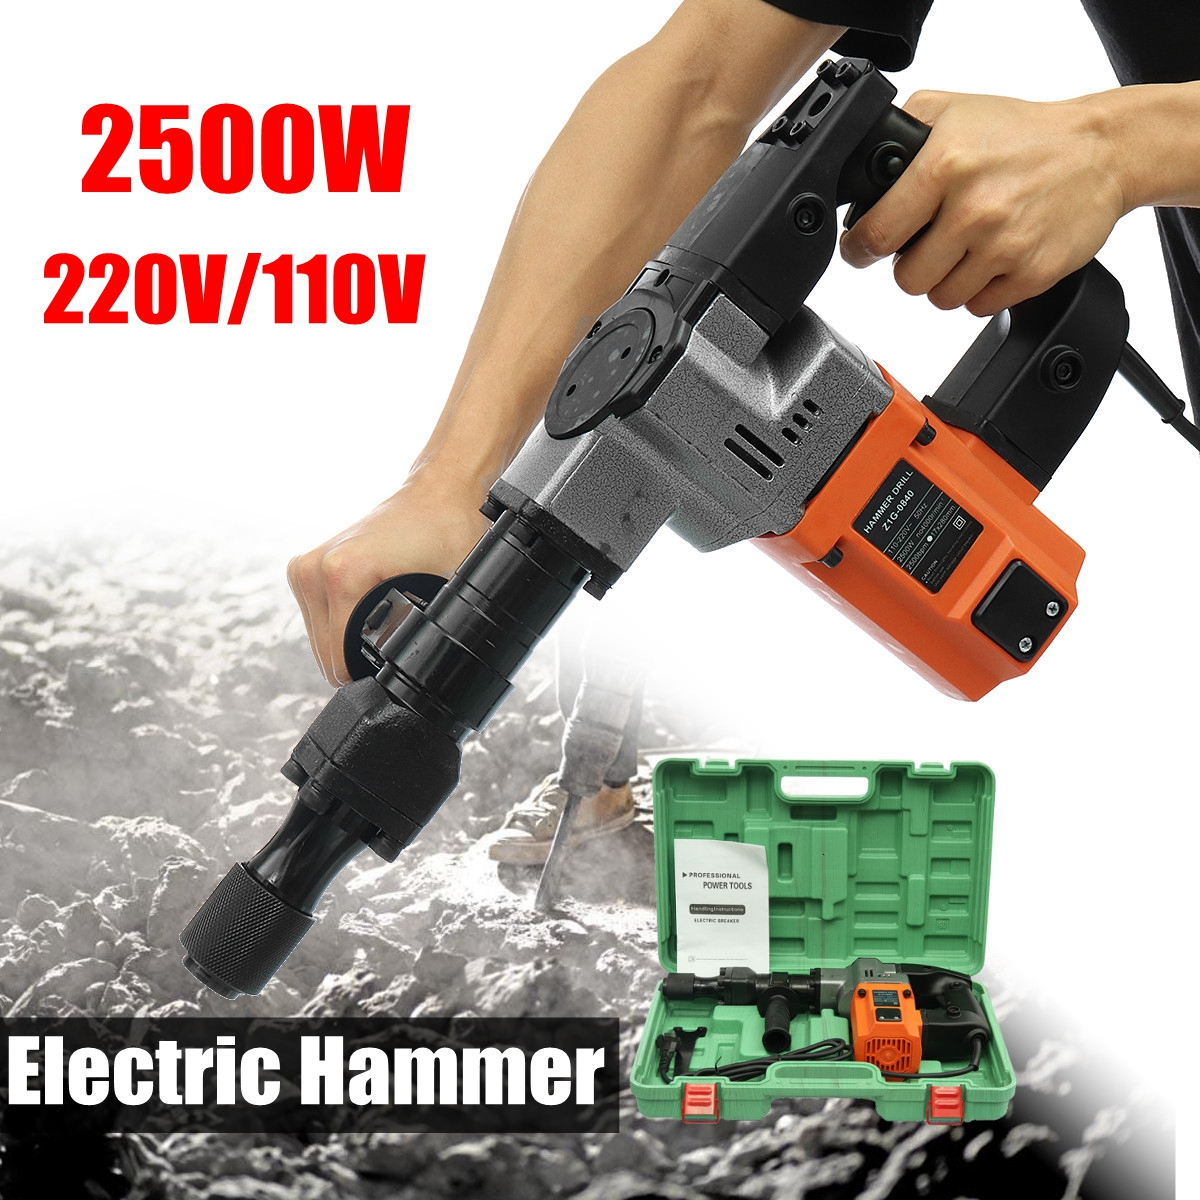 110V/220V 2500W Electric Demolition Jack Hammer Rotary Jackhammer Electric Concrete Drill 2500BPM 4000r/min110V/220V 2500W Electric Demolition Jack Hammer Rotary Jackhammer Electric Concrete Drill 2500BPM 4000r/min